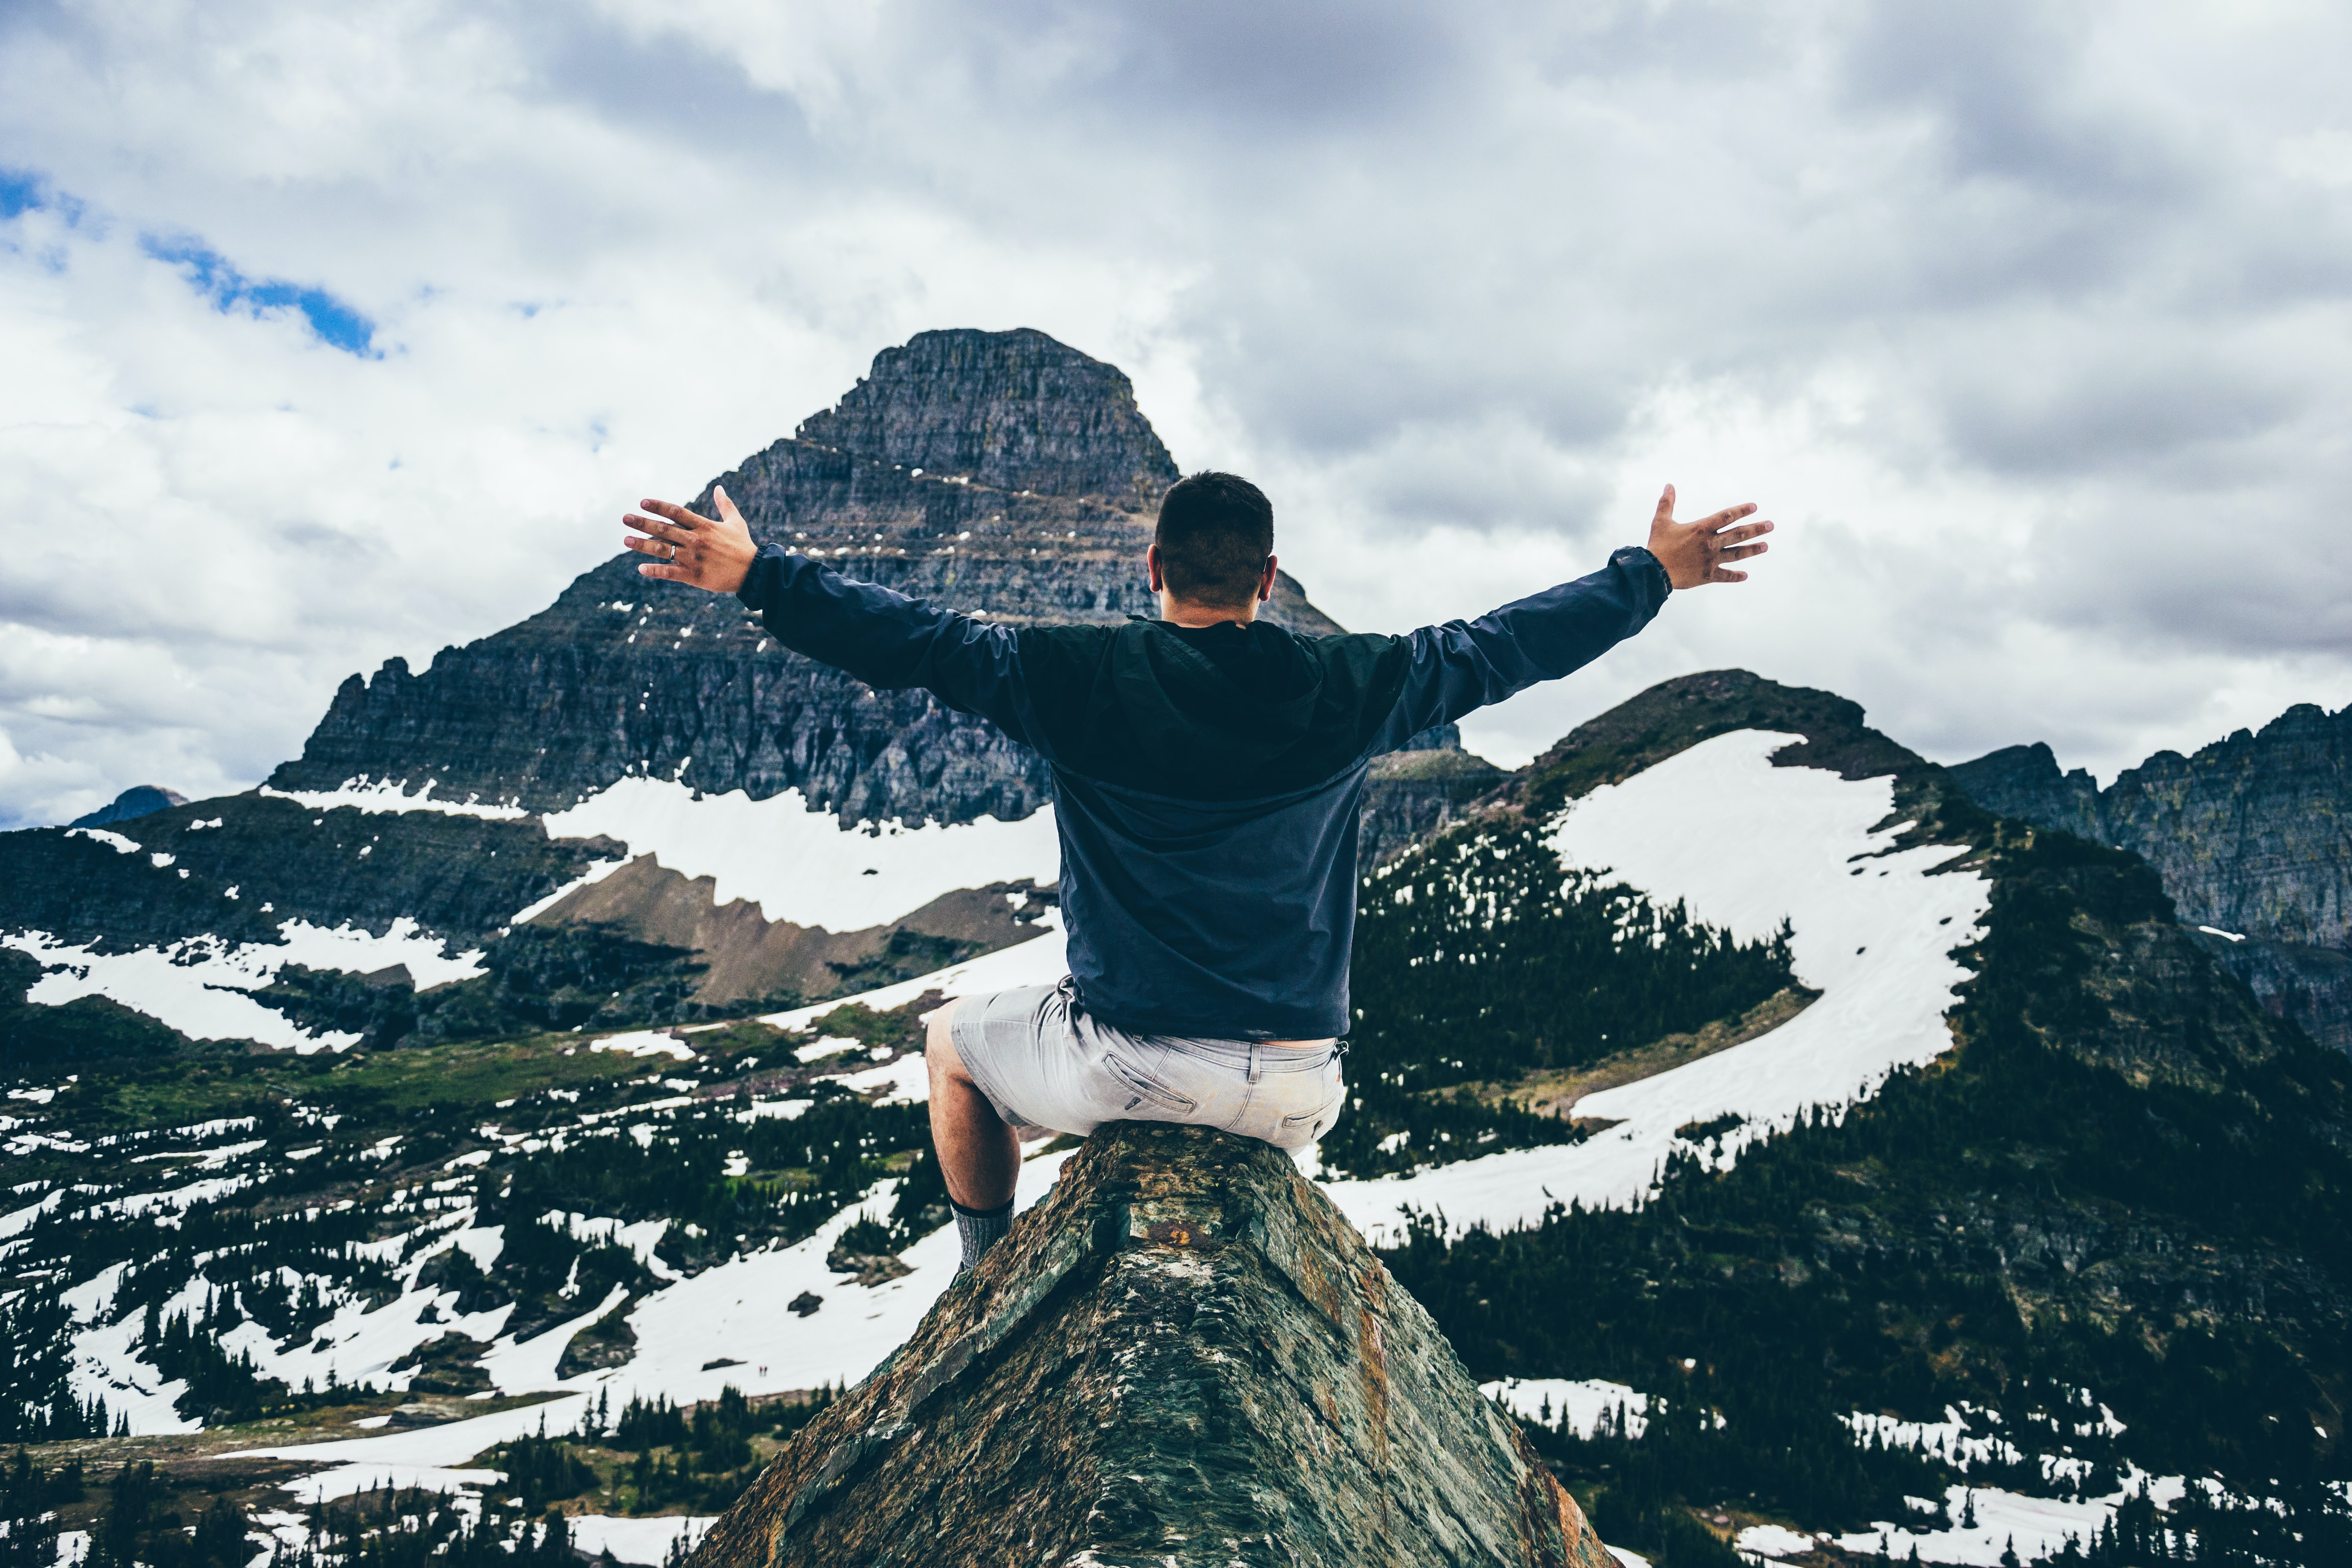 man sitting on cone rock spreading hands